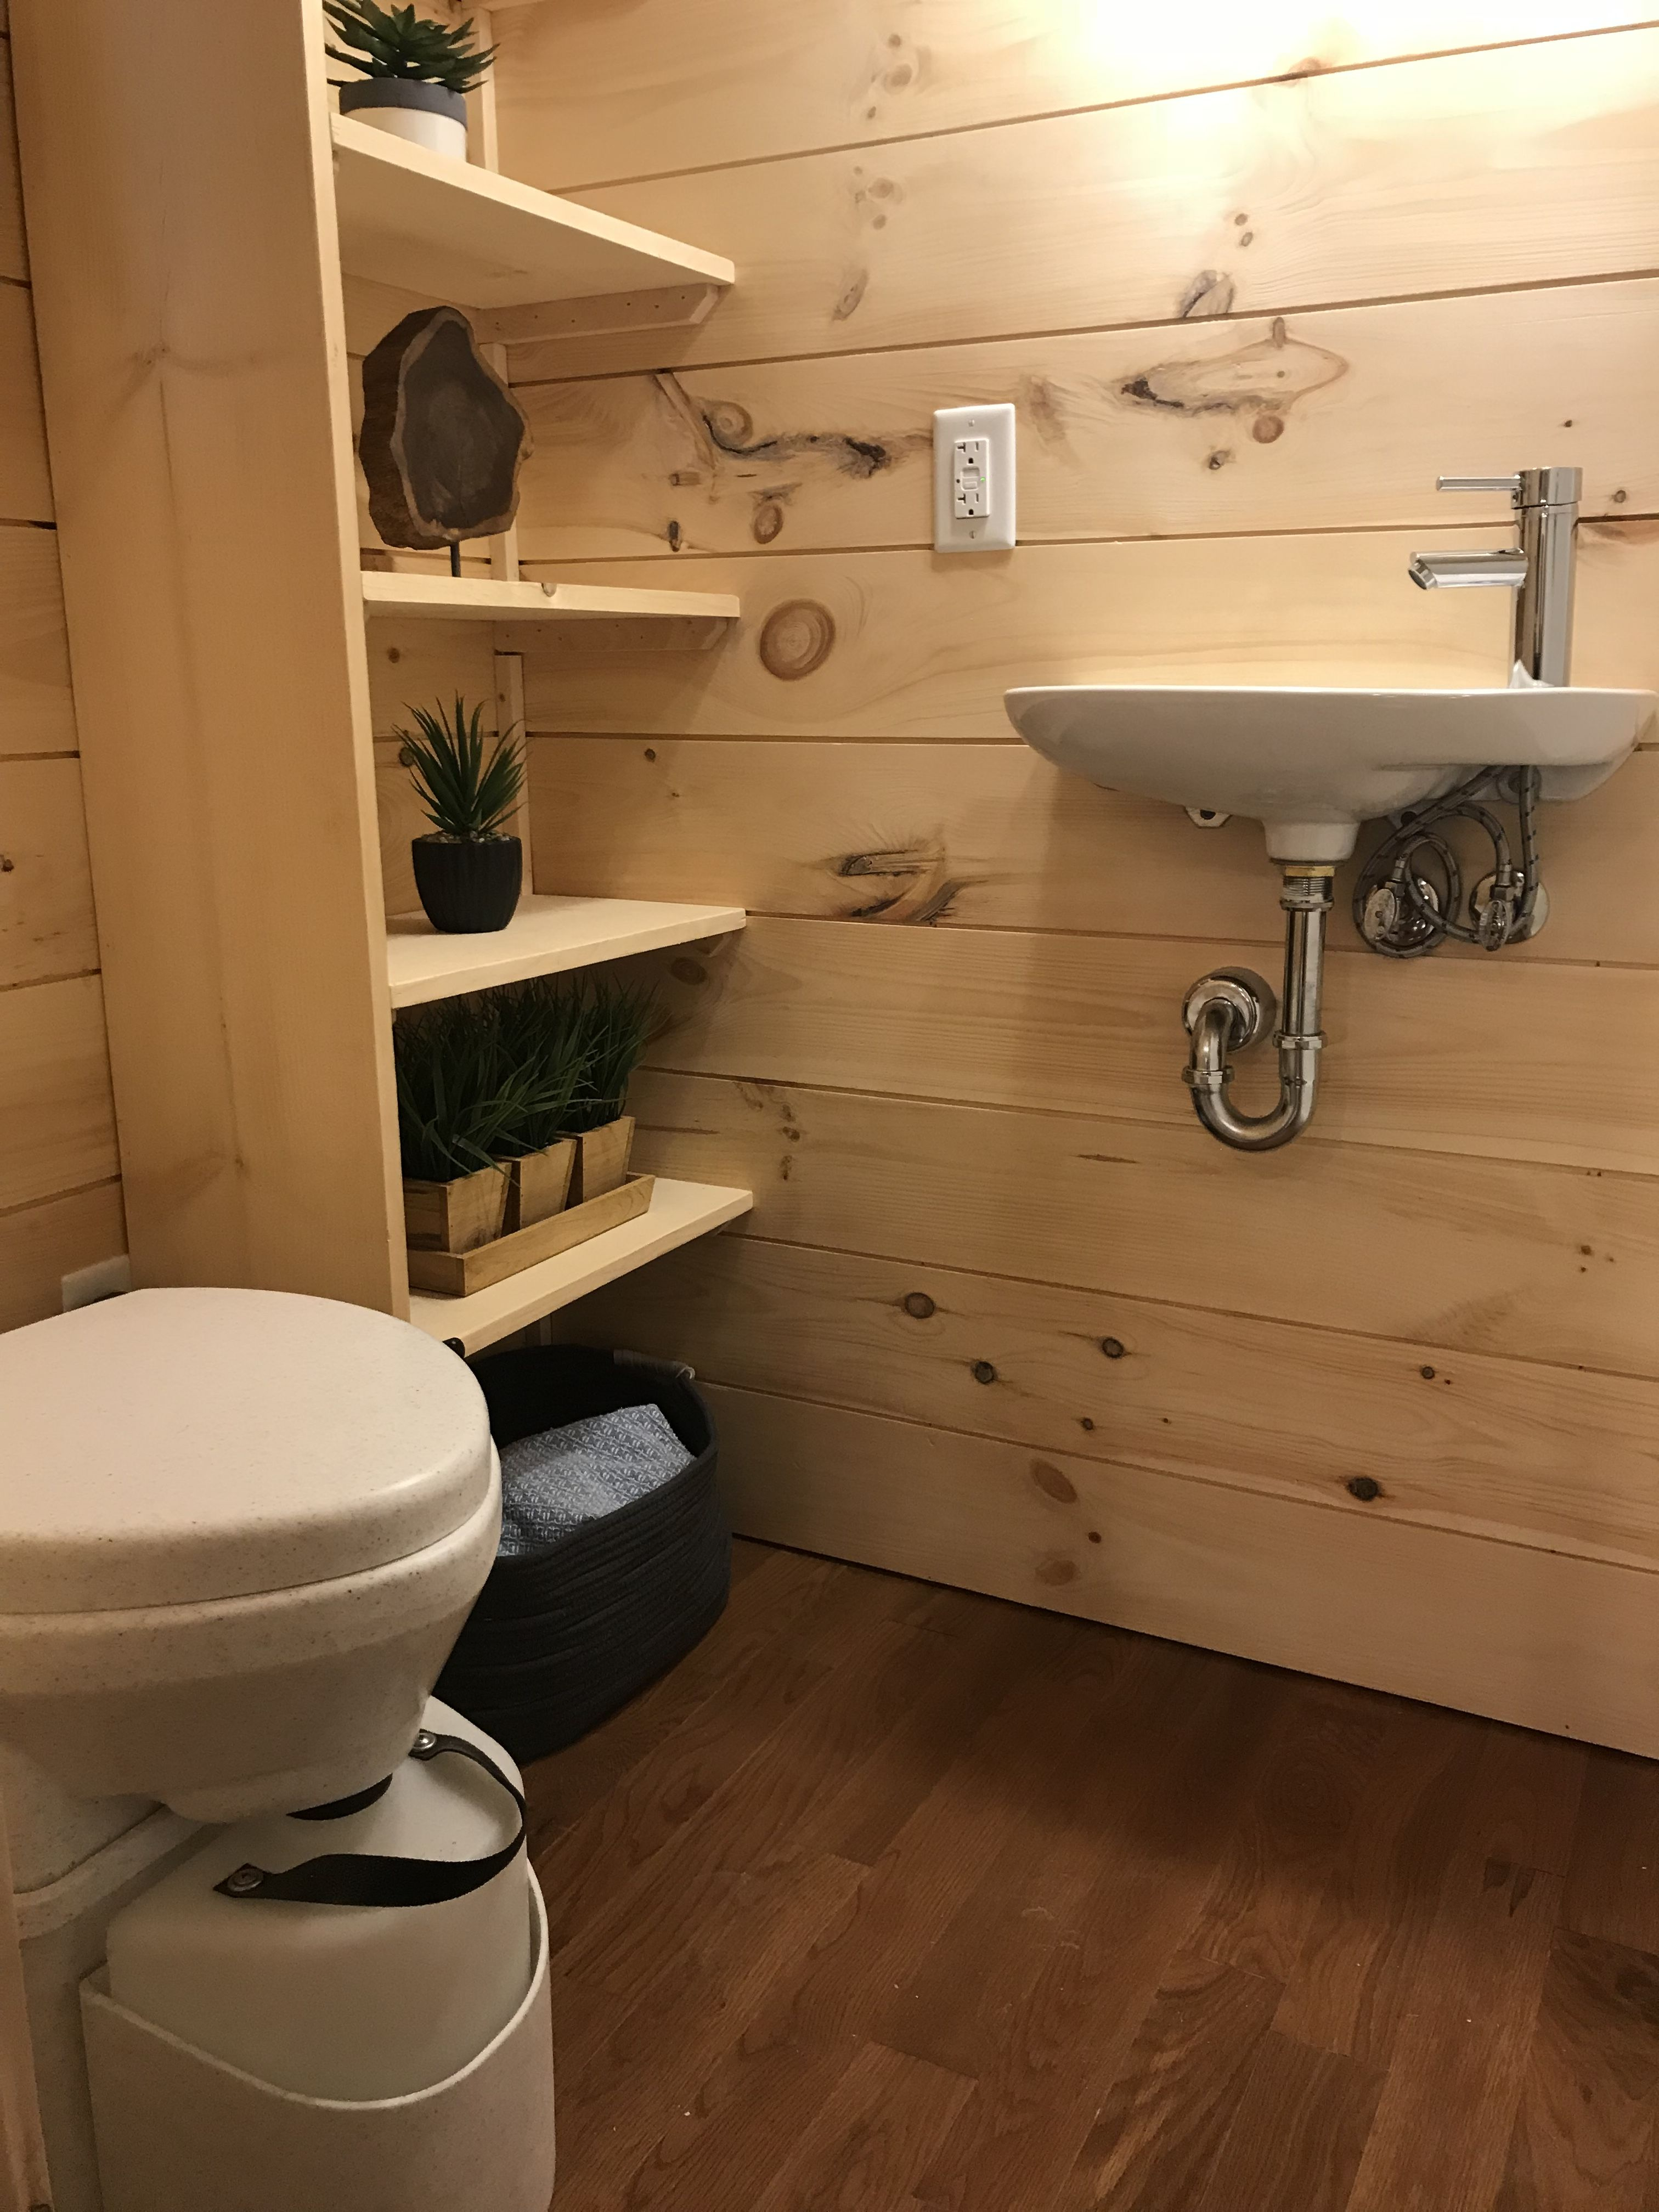 Sweet Dream Is An 8 X 22 Incredible Tiny Home With A Base Price